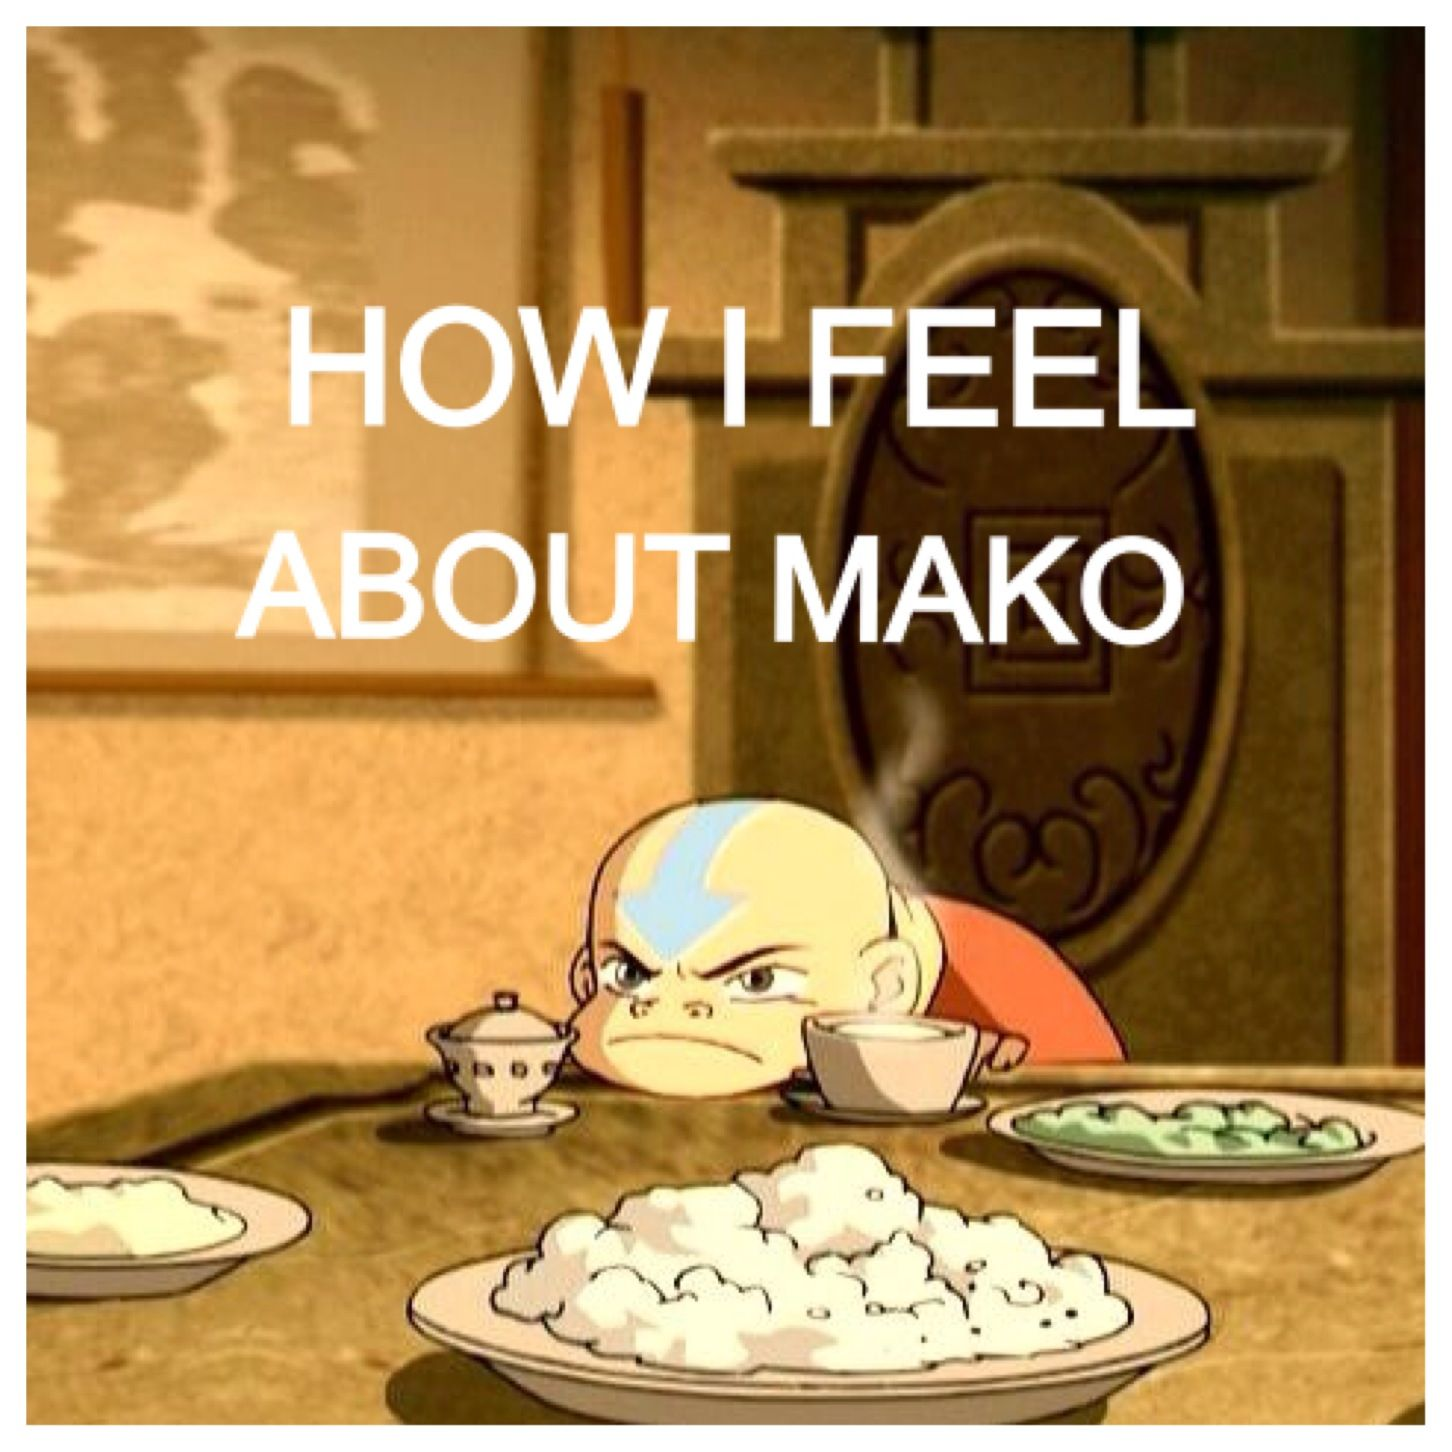 Yes. That is how i feel inside when watching mako with korra and/or asami